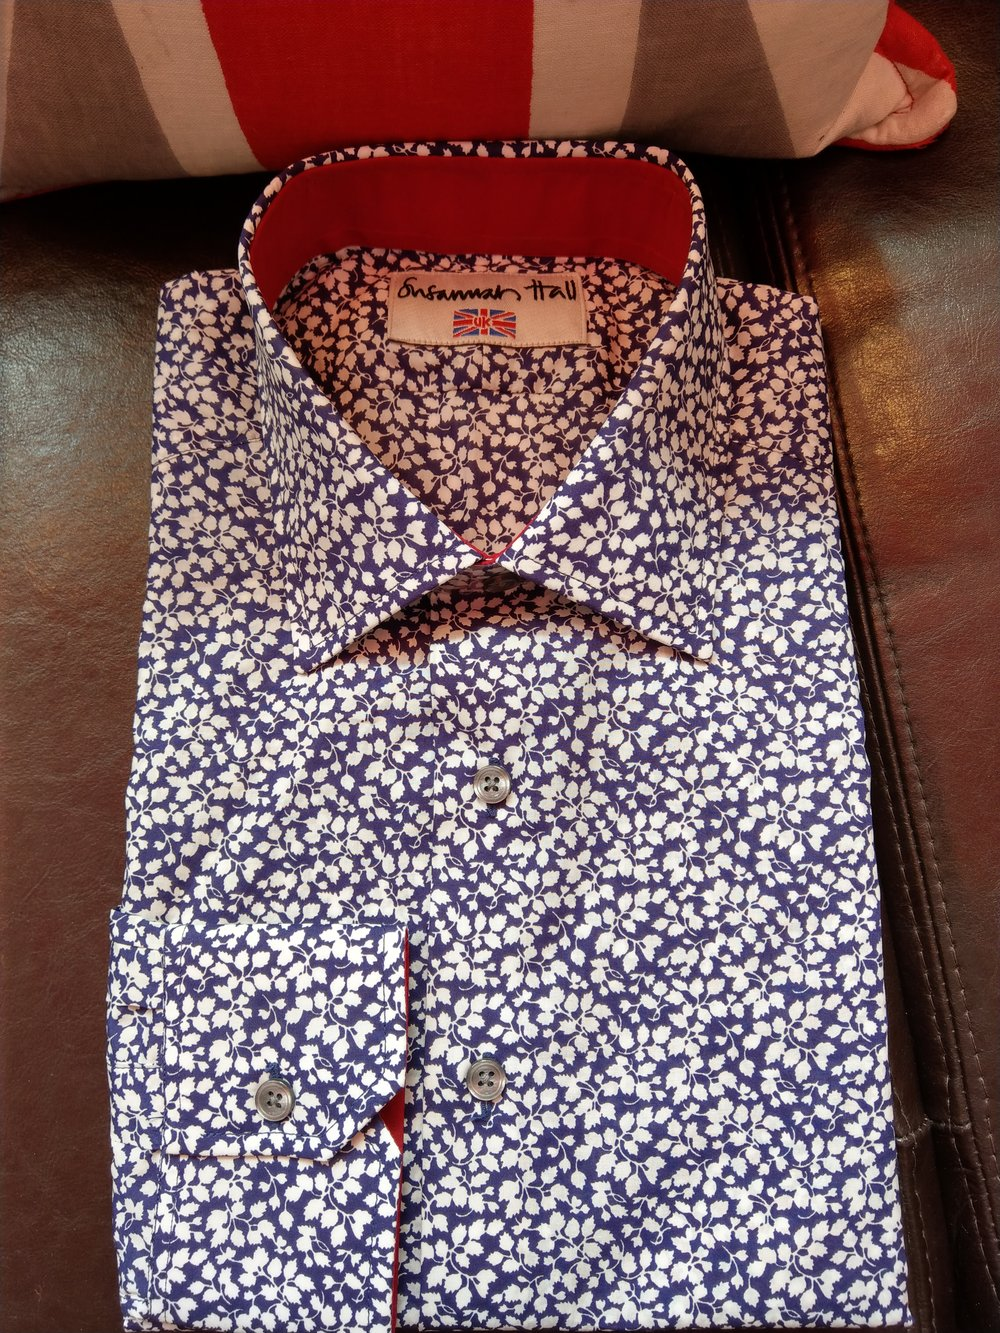 floral-bespoke-pattern-casual-shirt-detail-susannah-hall-tailors-made-uk-britain.jpg